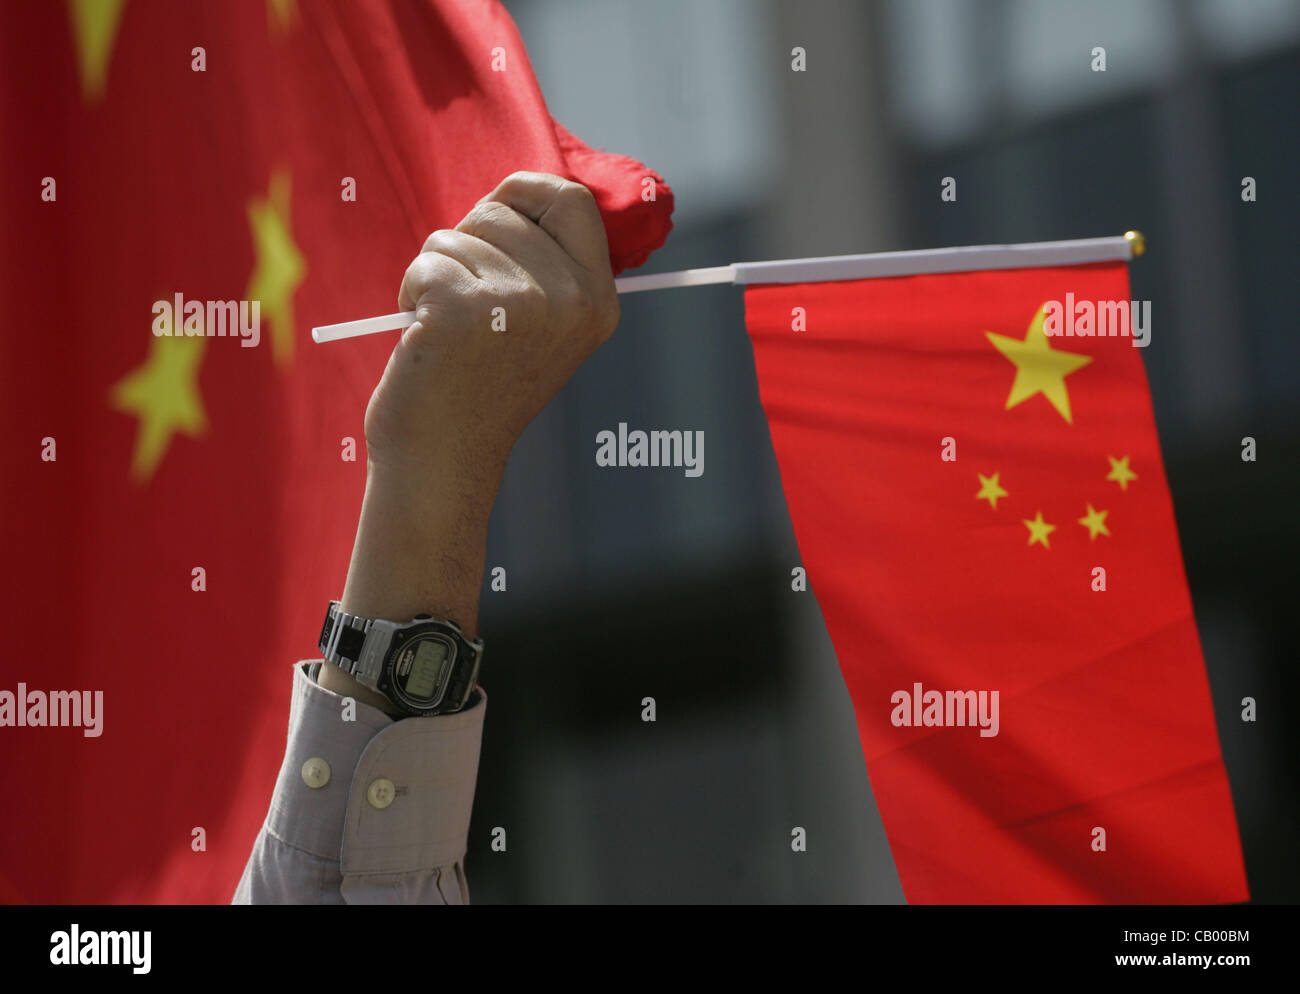 May 11, 2012 - Los Angeles, California, U.S. - A Chinese man holds a Chinese flag during a demonstration in front - Stock Image